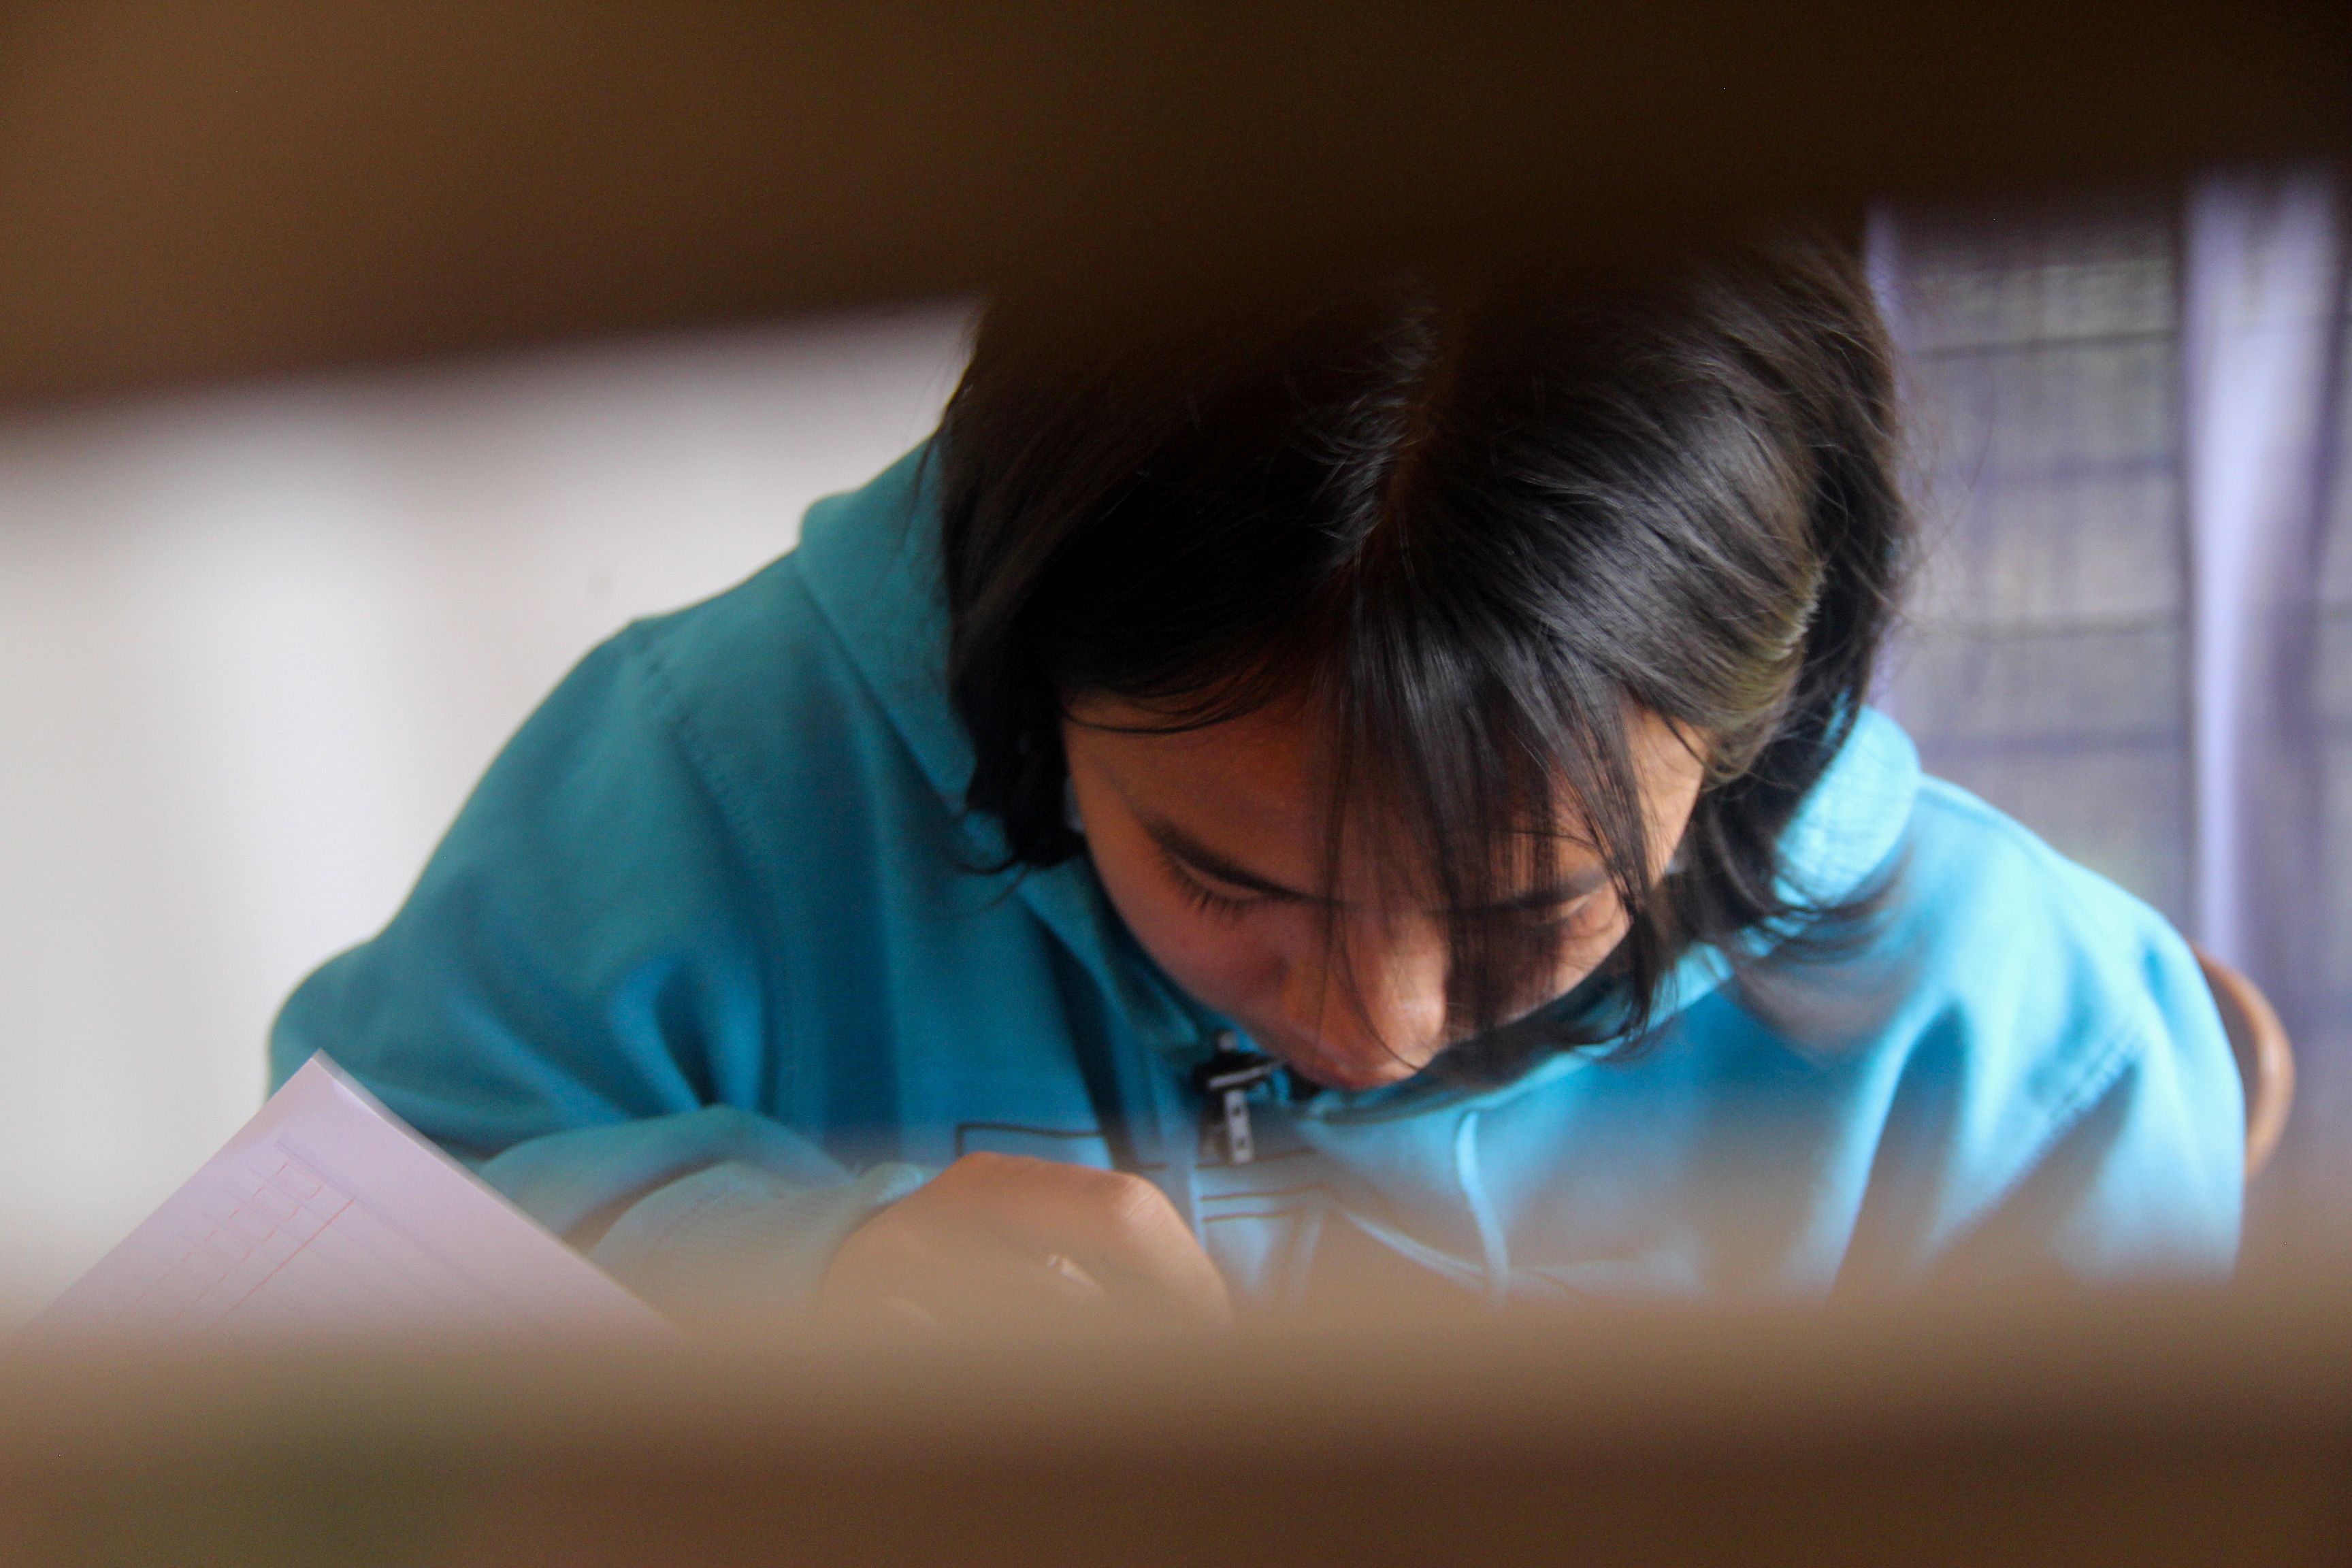 Ni Luh Nael, 13-years-old, writes in a book while studying at Bali Street Mums and Kids shelter, after dropping out of school during the coronavirus disease (COVID-19) pandemic, in Denpasar, Bali, Indonesia, September 10, 2021. Picture taken September 10, 2021. REUTERS/Wayan Sukarda